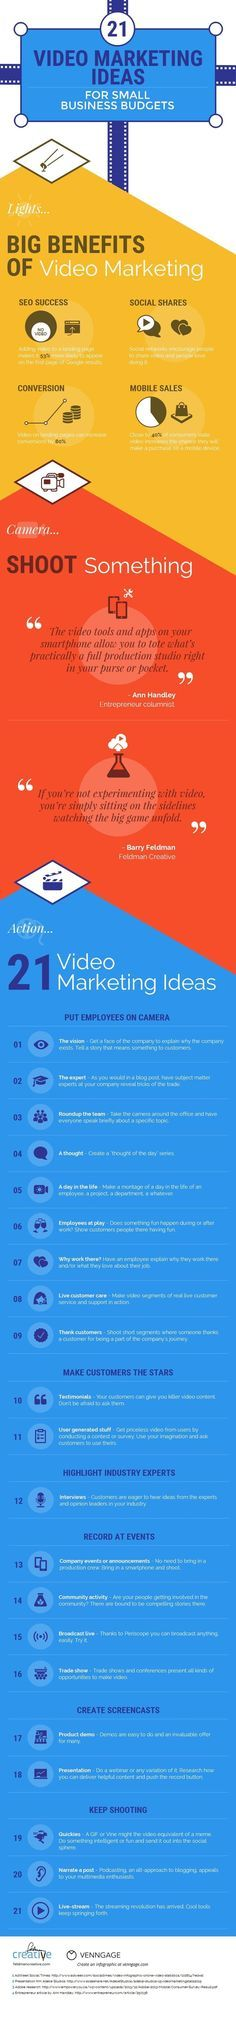 Content - Making captivating and effective marketing videos doesn't cost as much as you think. The following tips can help you get started.